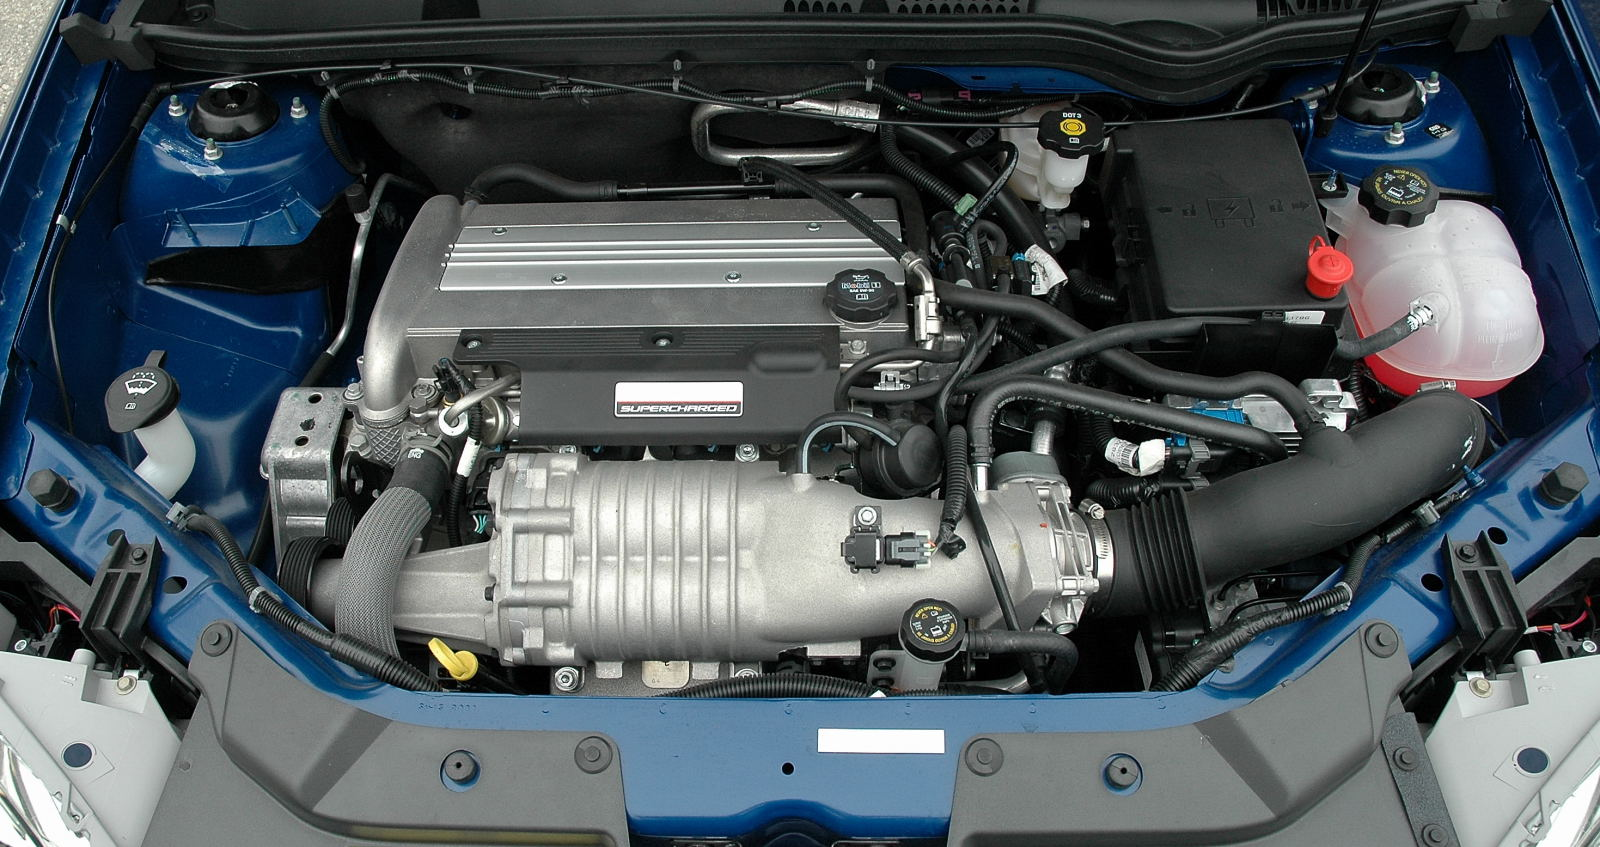 Chevrolet Cobalt engine #4